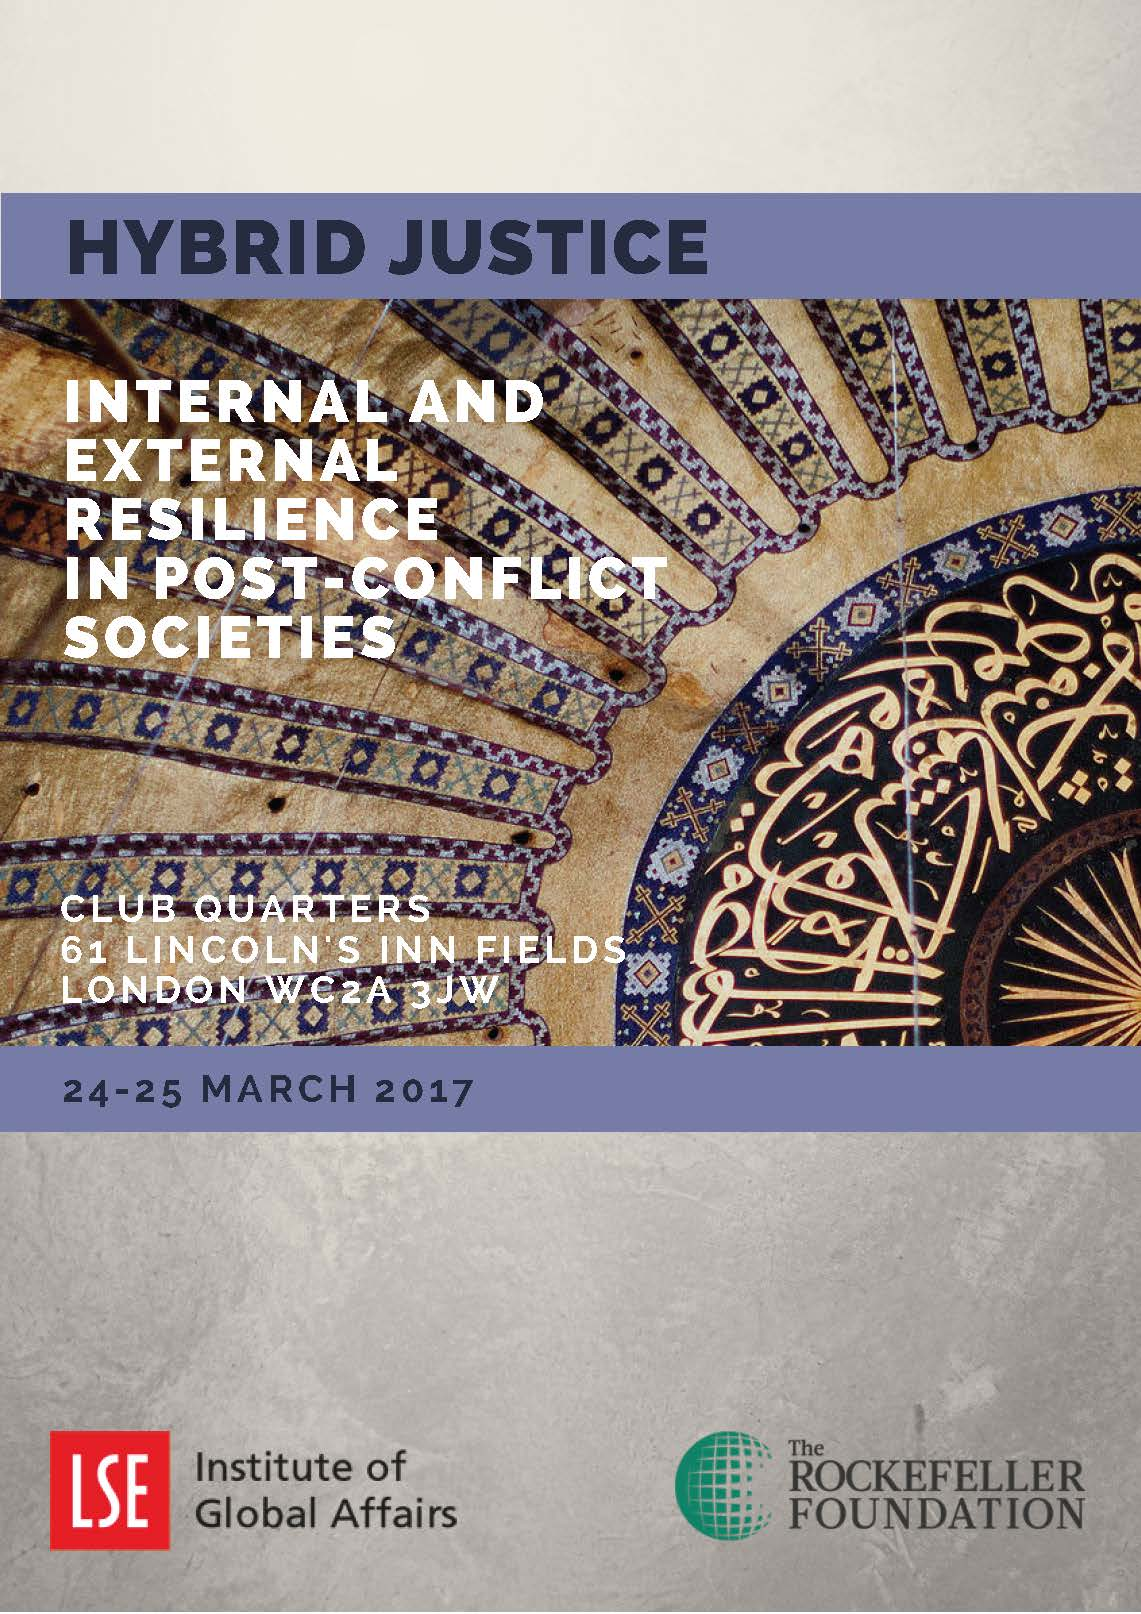 Hybrid Justice: Internal and External Resilience in Post-Conflict Societies, LSE – London